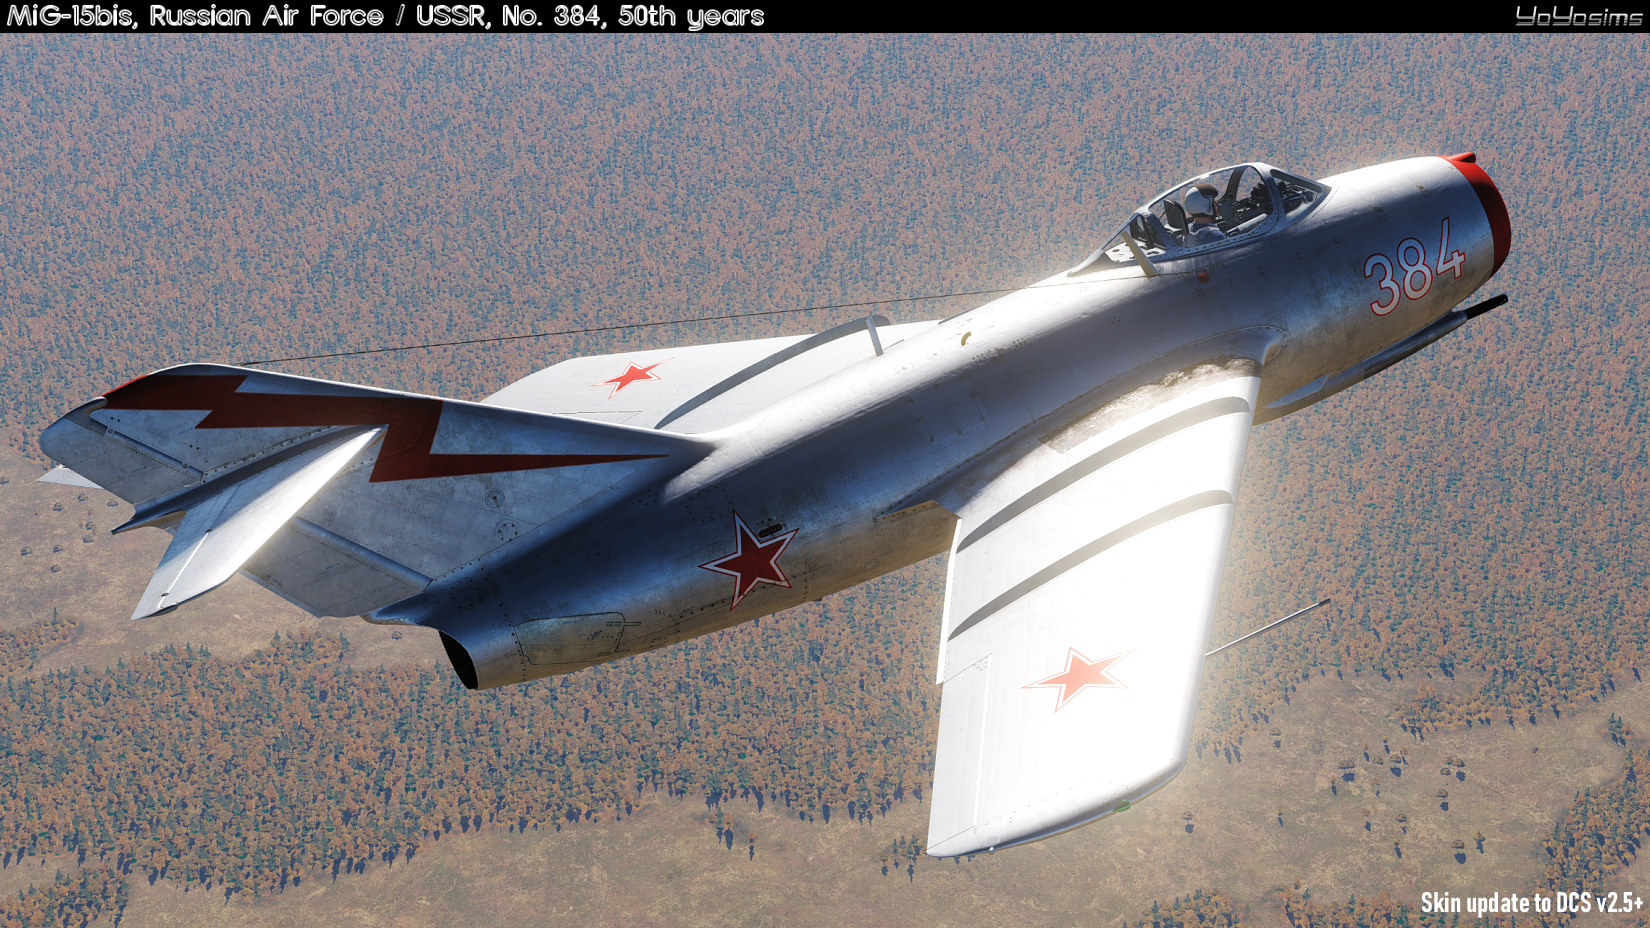 MiG-15bis, Russian Air Force, No. 384